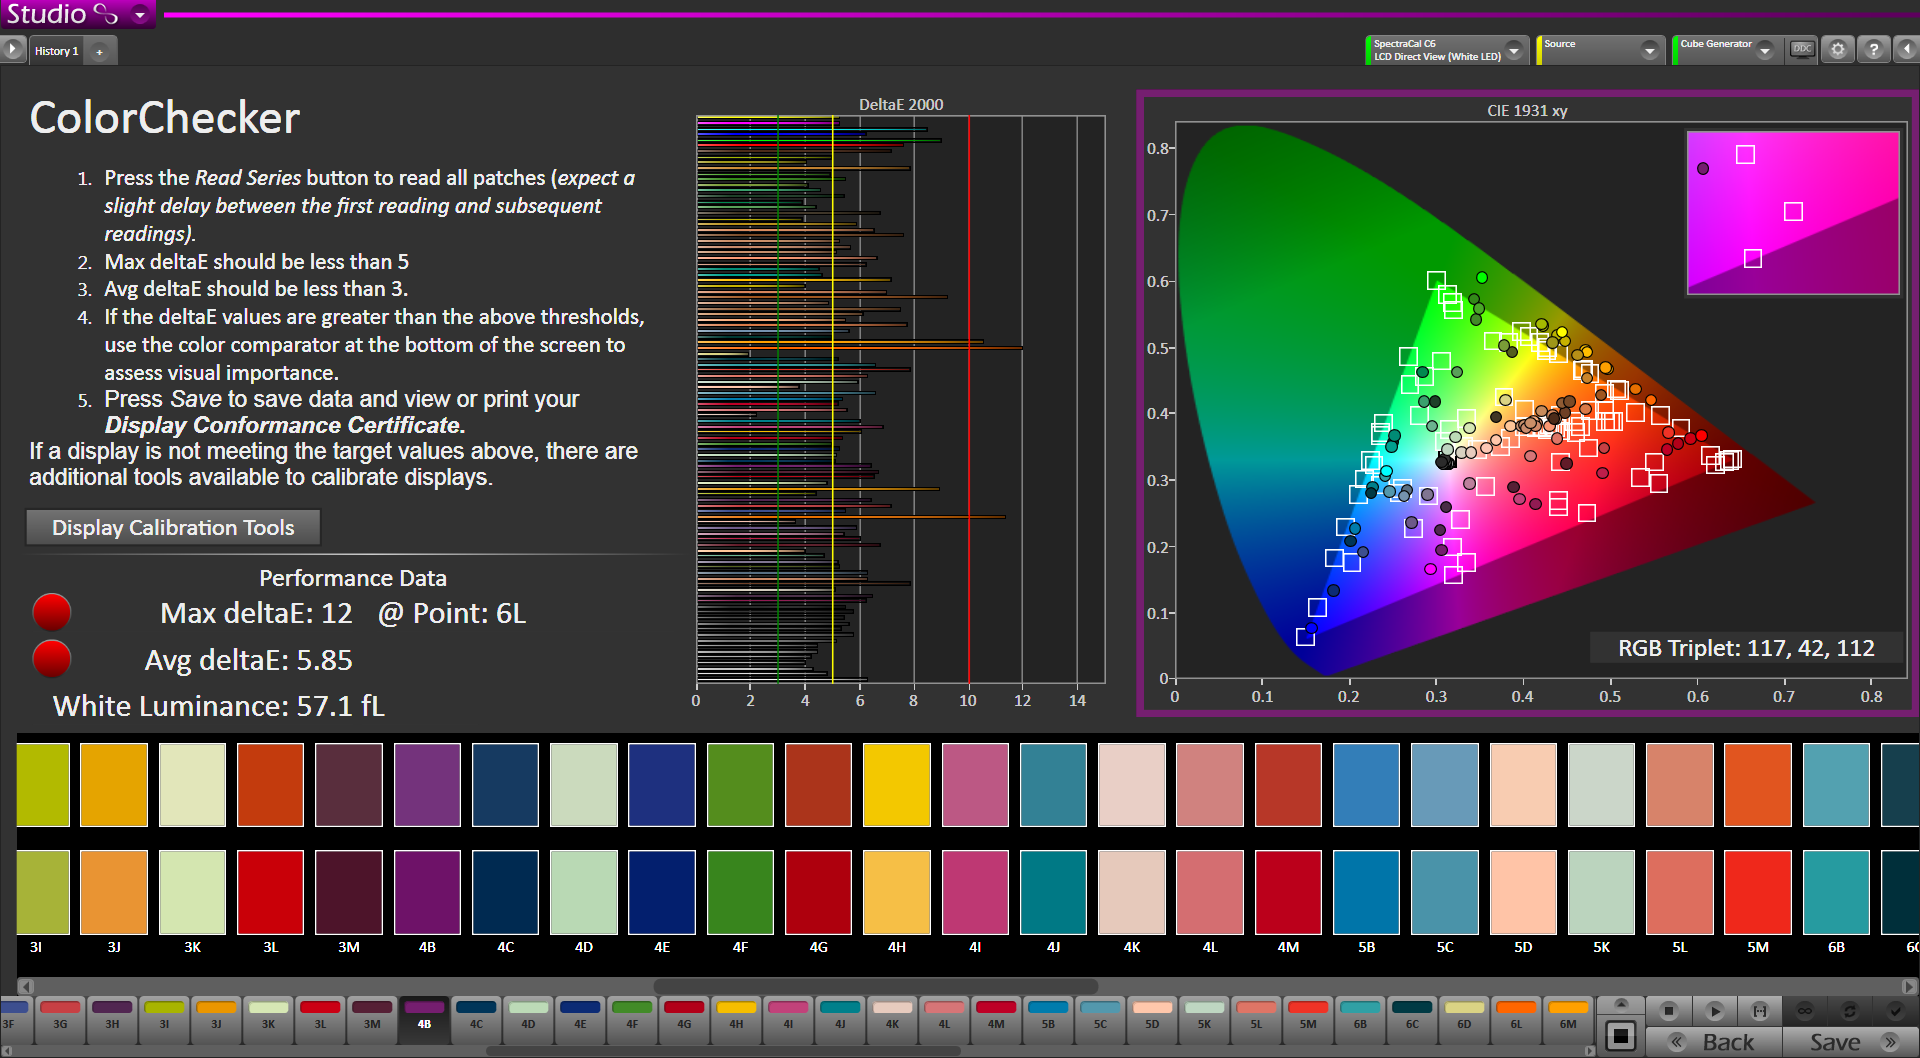 SpectraCal Releases Free ColorChecker Software 7